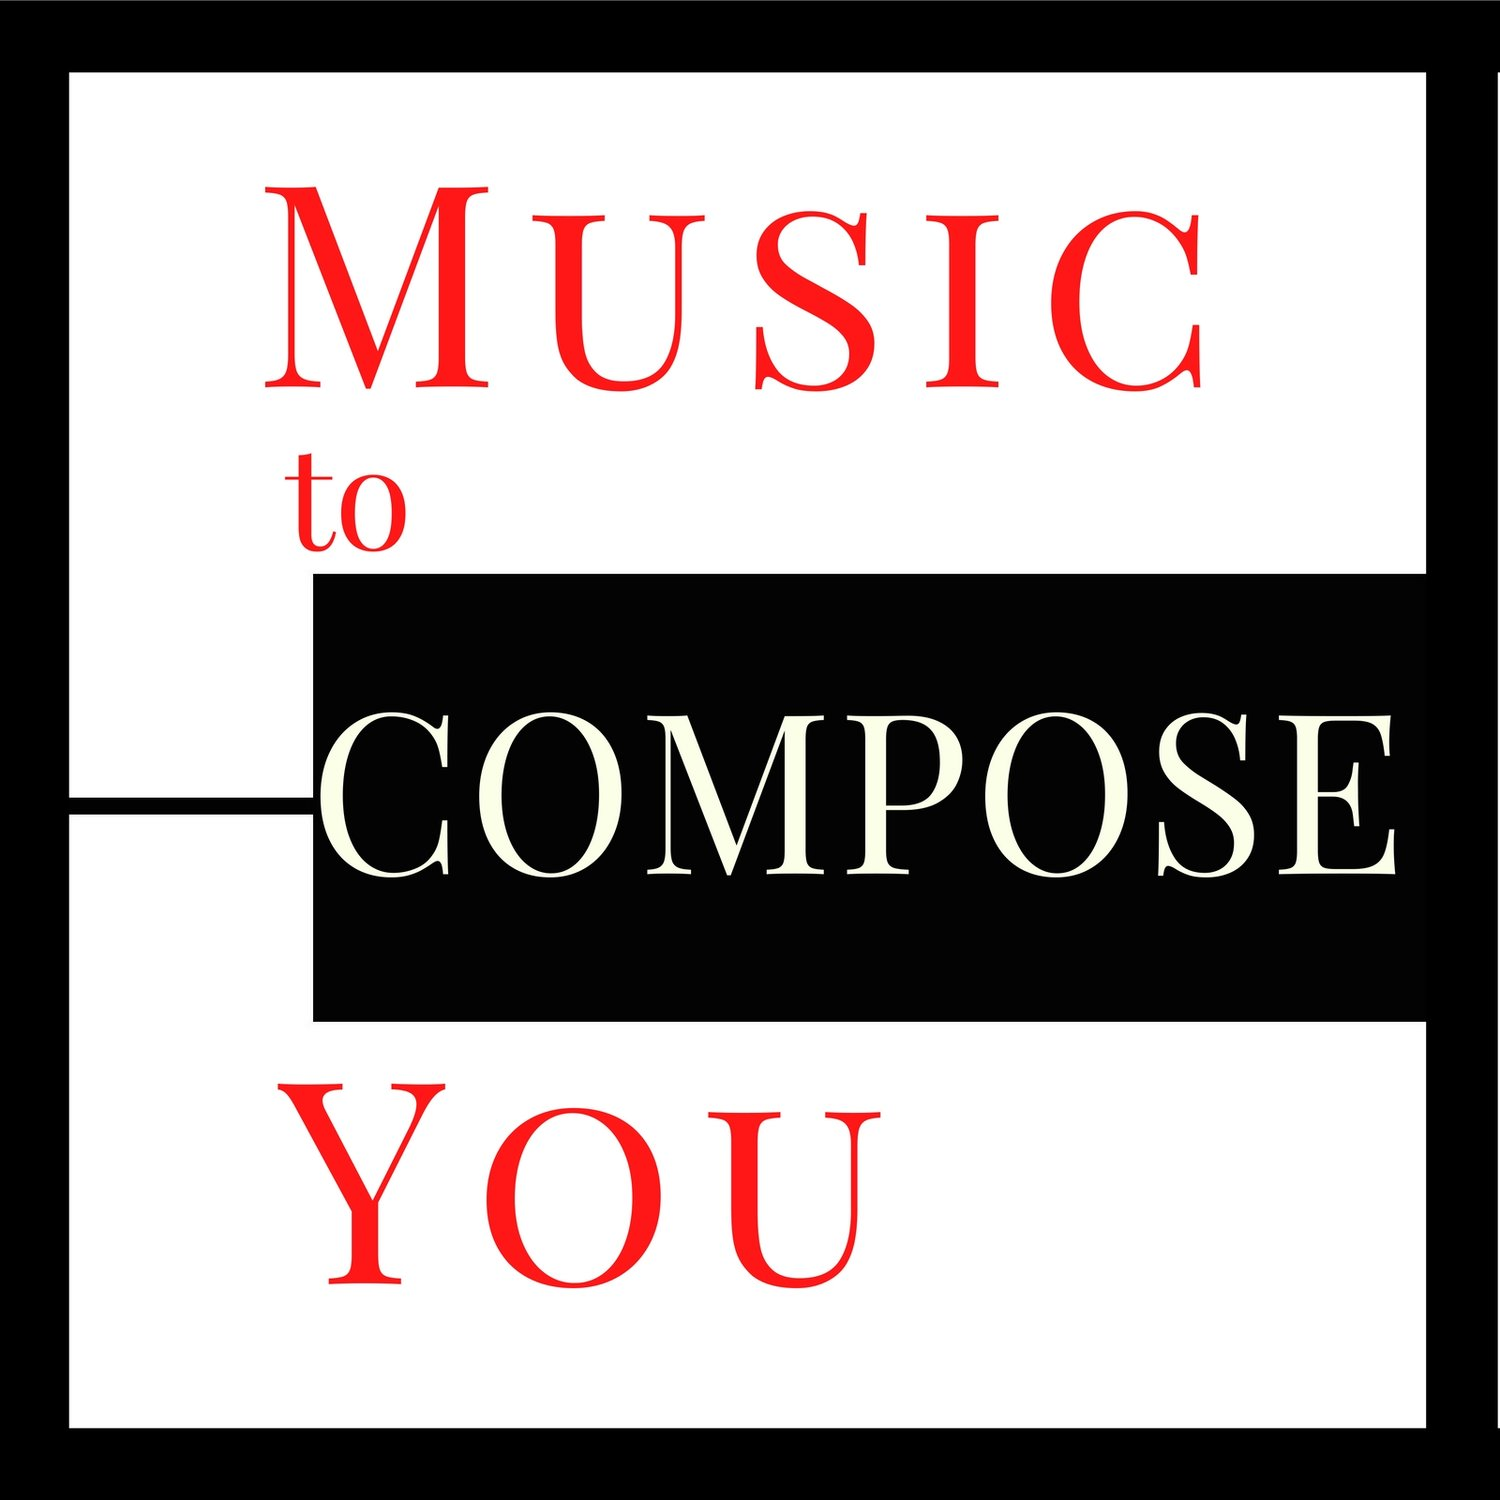 Music to Compose You